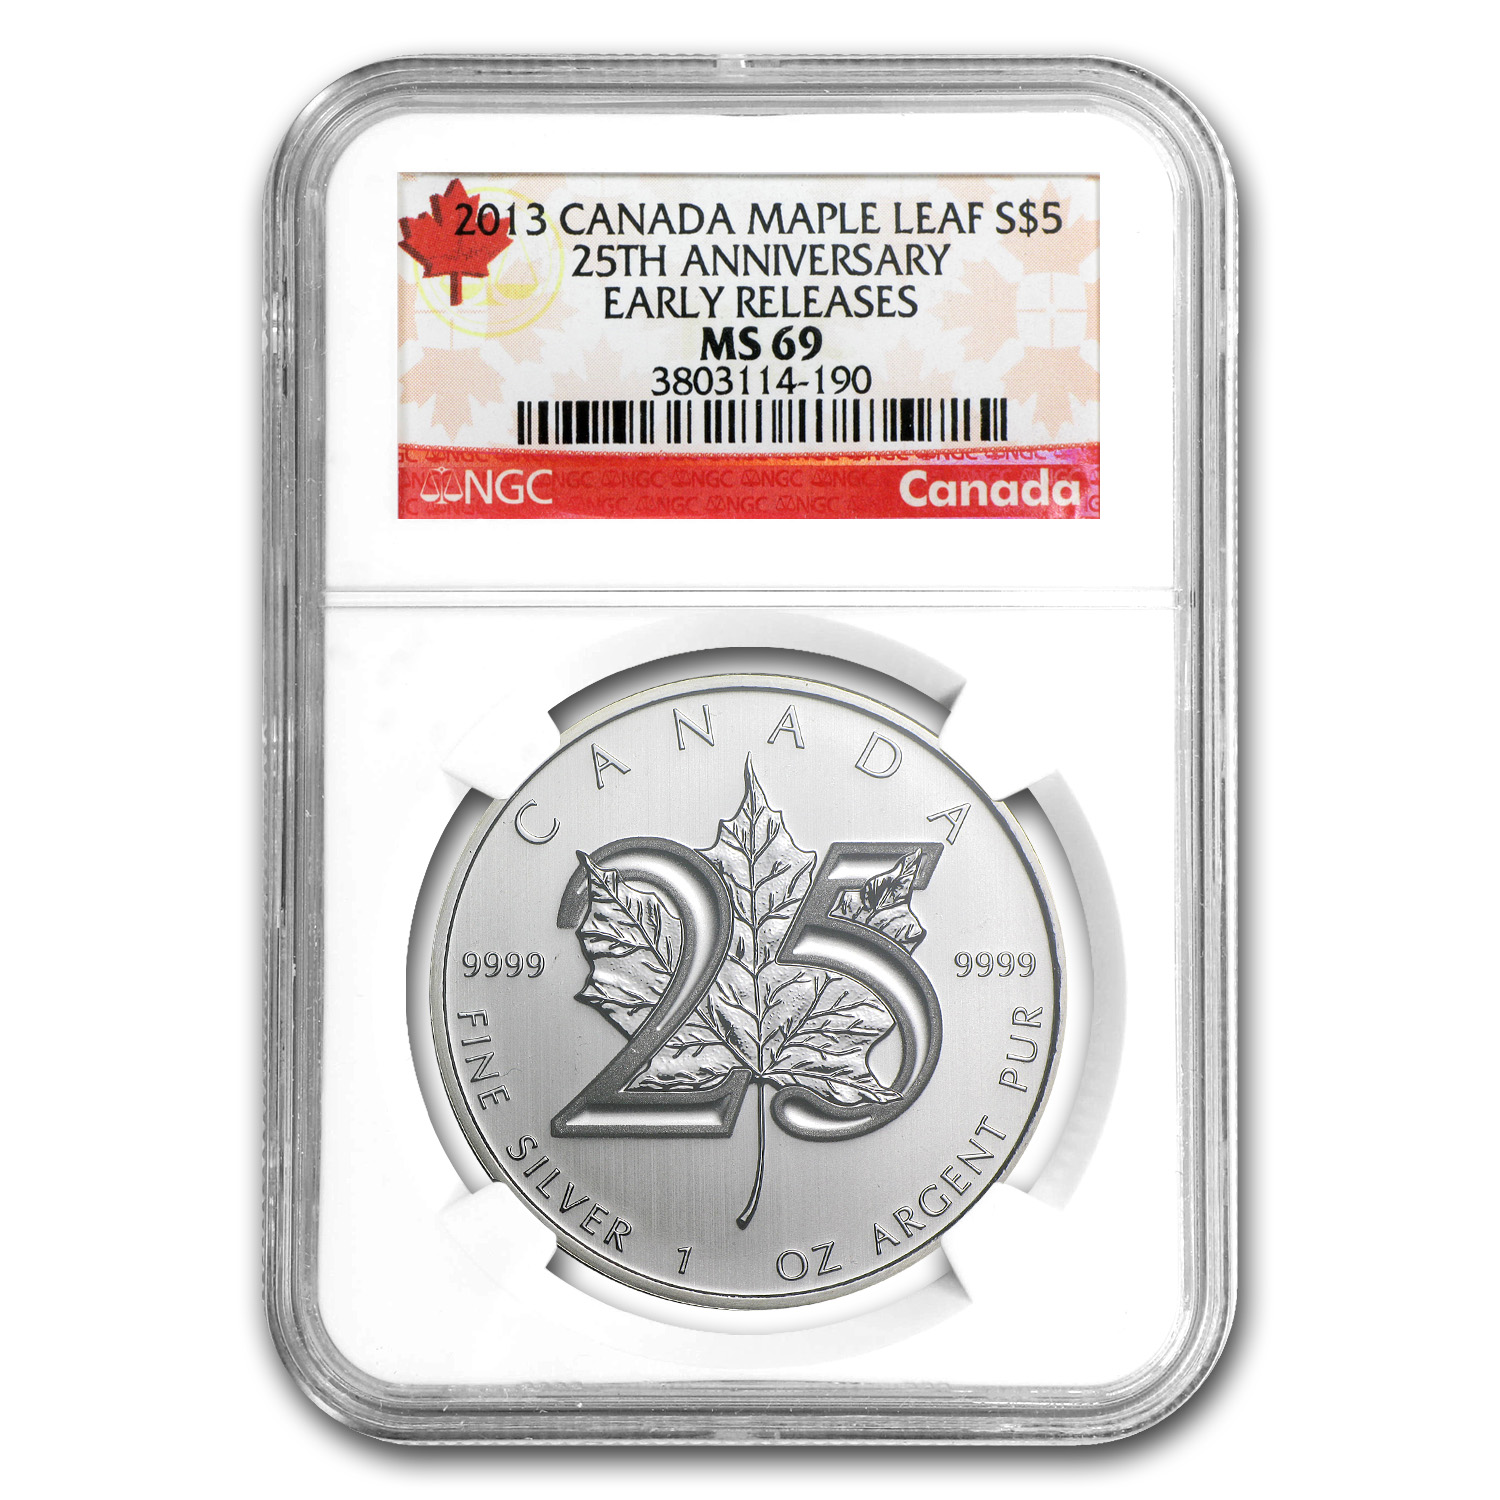 2013 1 oz Silver Canadian Maple Leaf - 25th Anniv. MS-69 NGC - ER